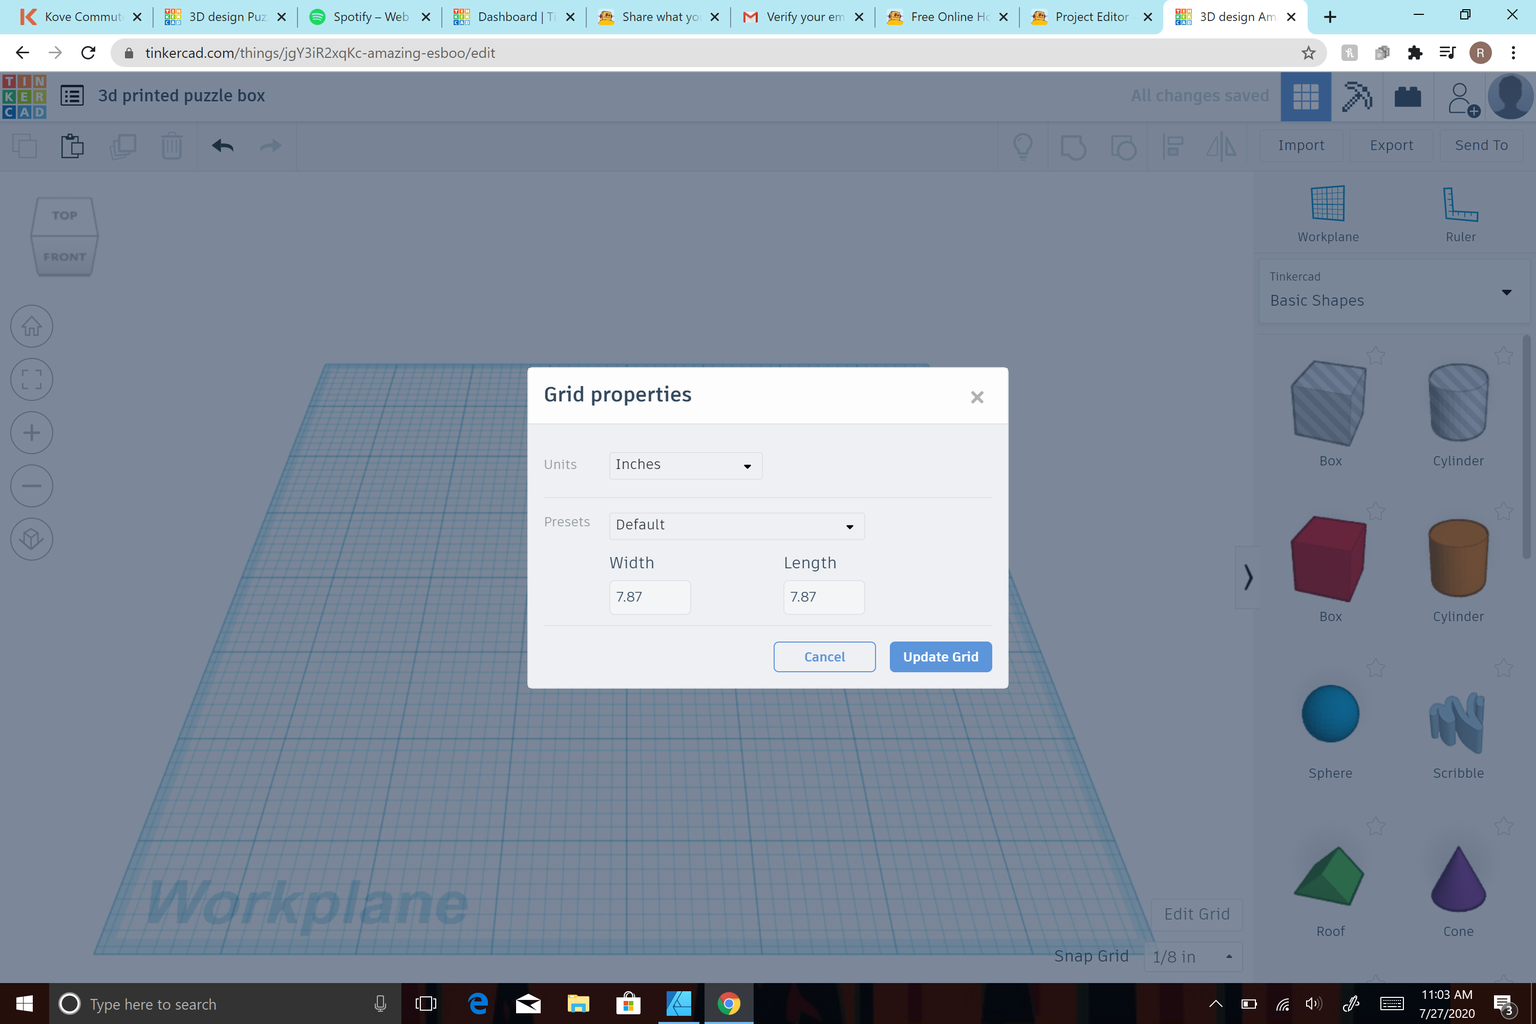 Create Project and Edit Grid